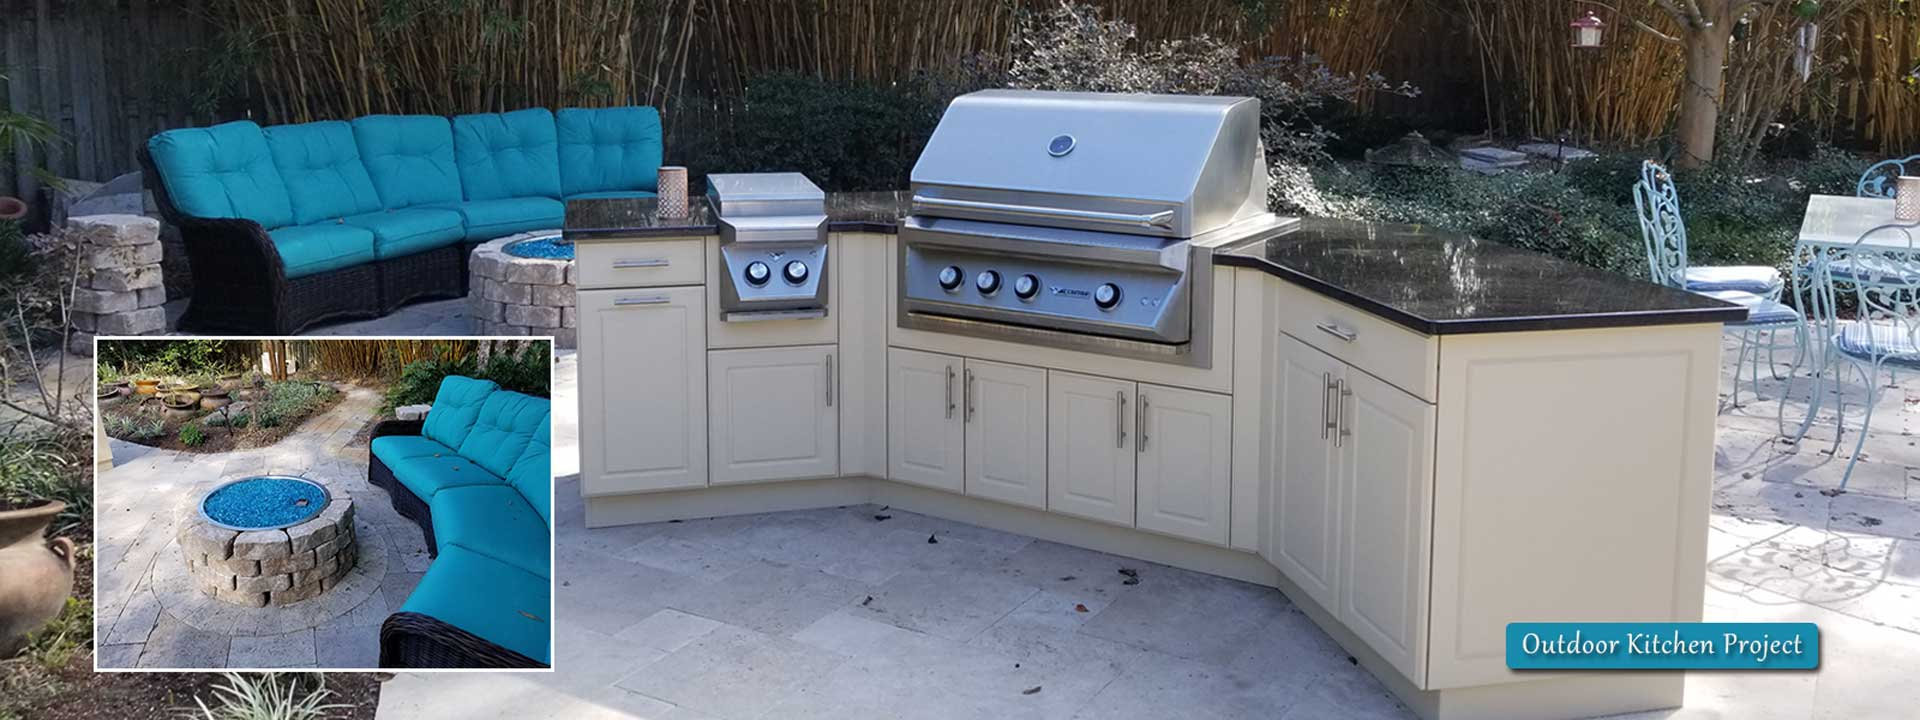 Art Zigler Outdoor Kitchen Project